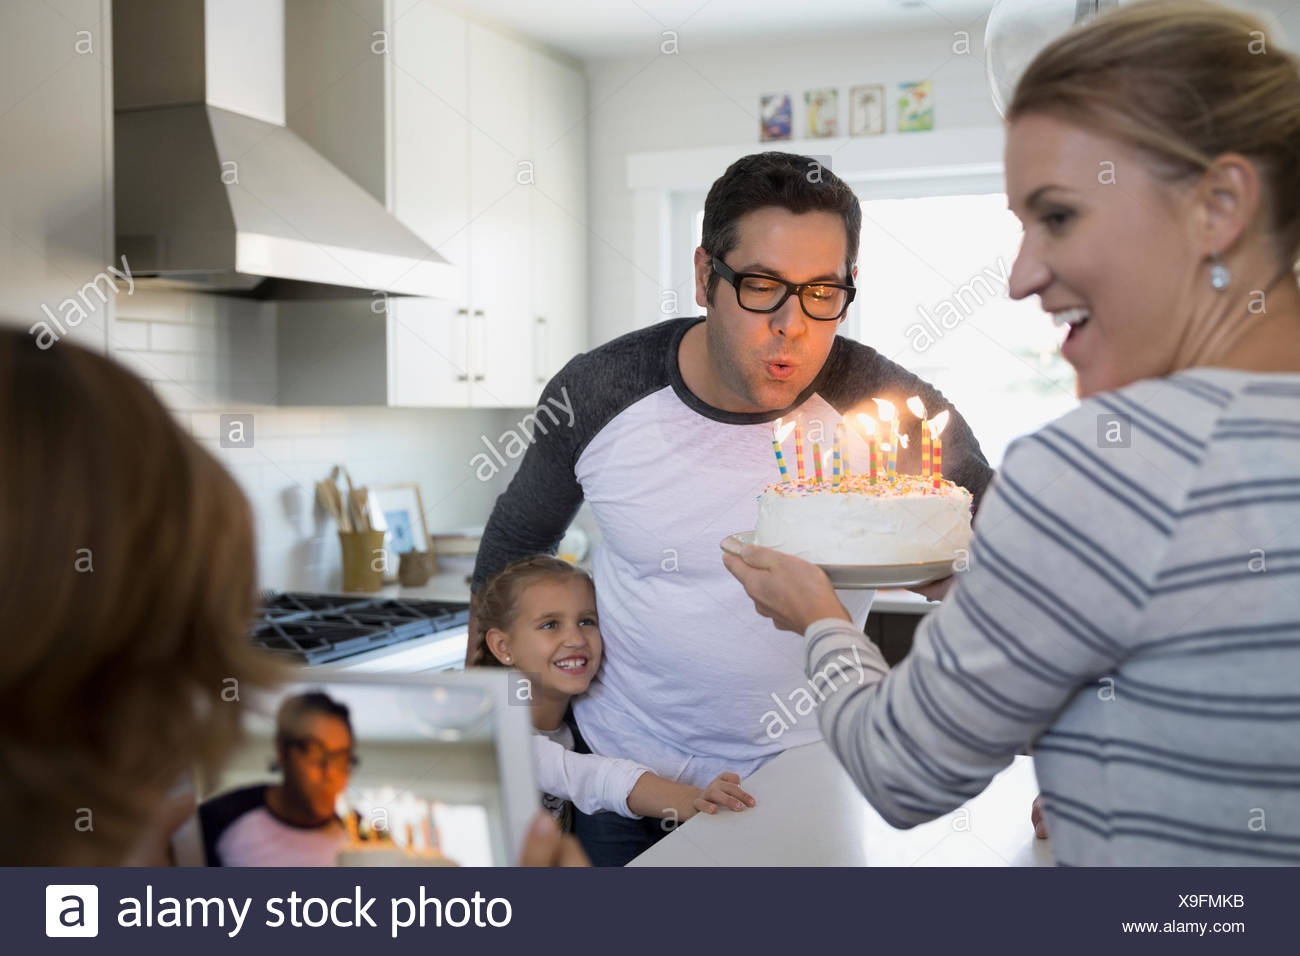 Father blowing out birthday cake candles in kitchen - Stock Image